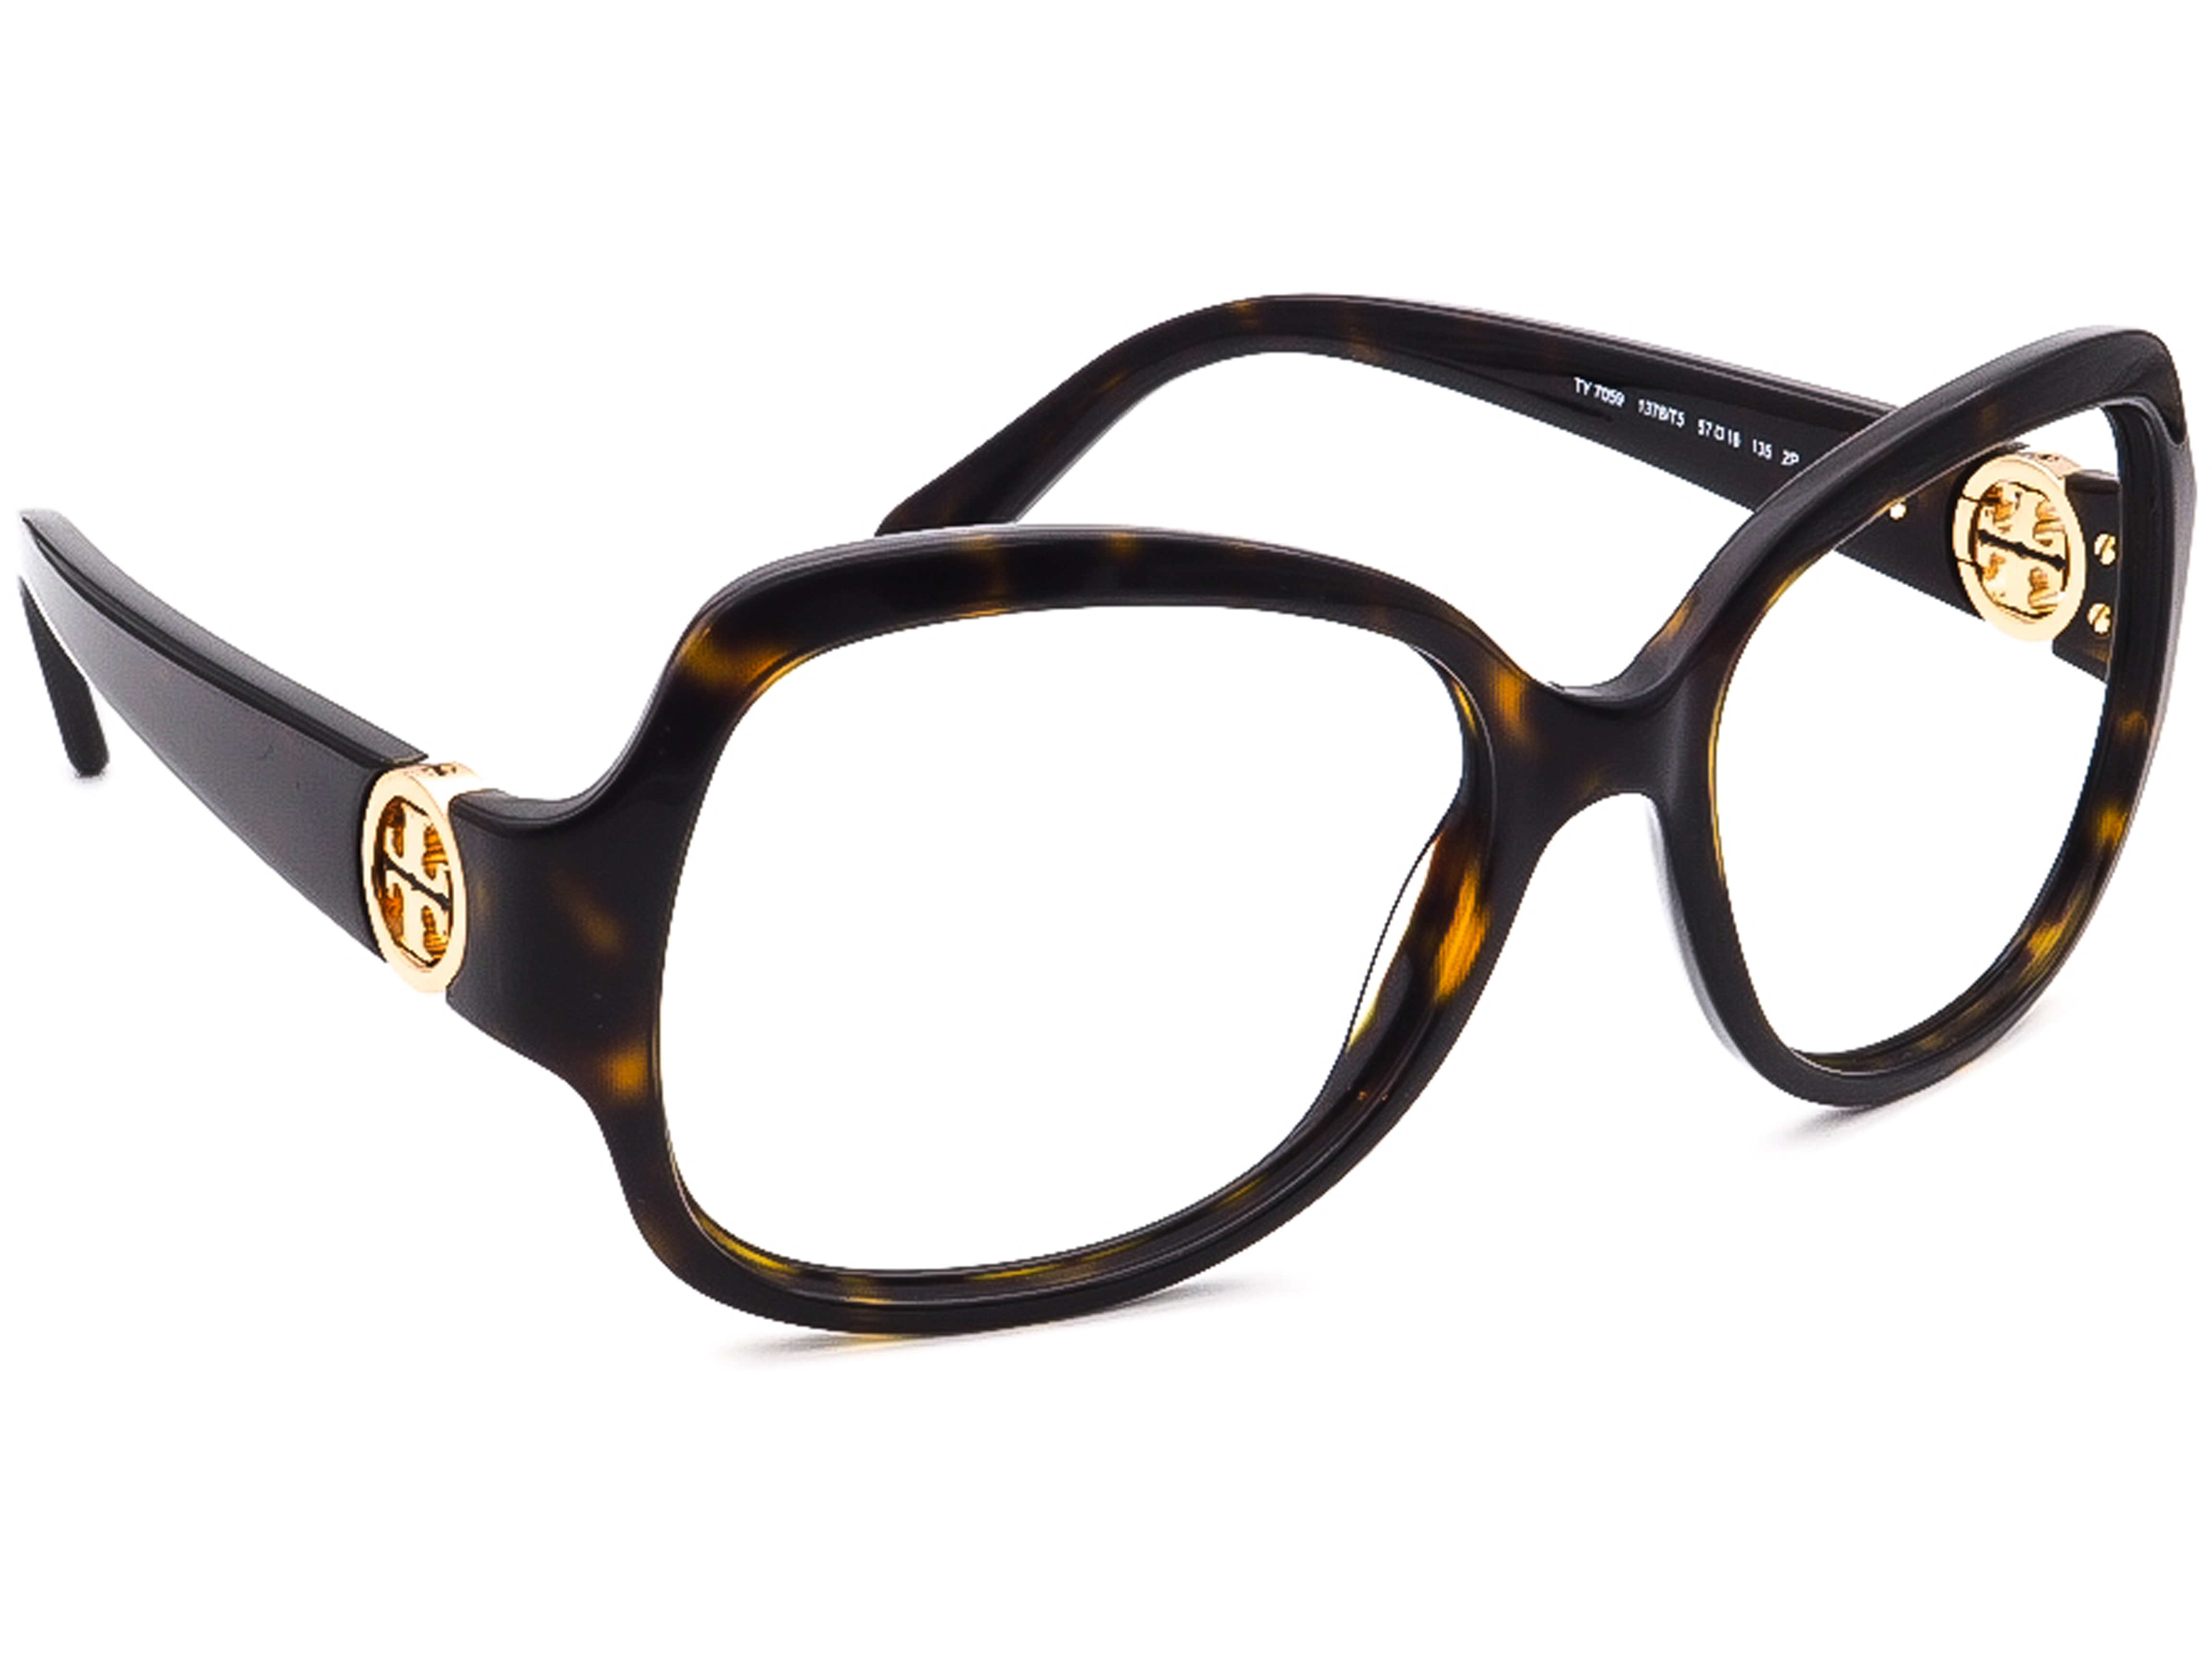 Tory Burch TY 7059 1378/T5 Sunglasses Frame Only